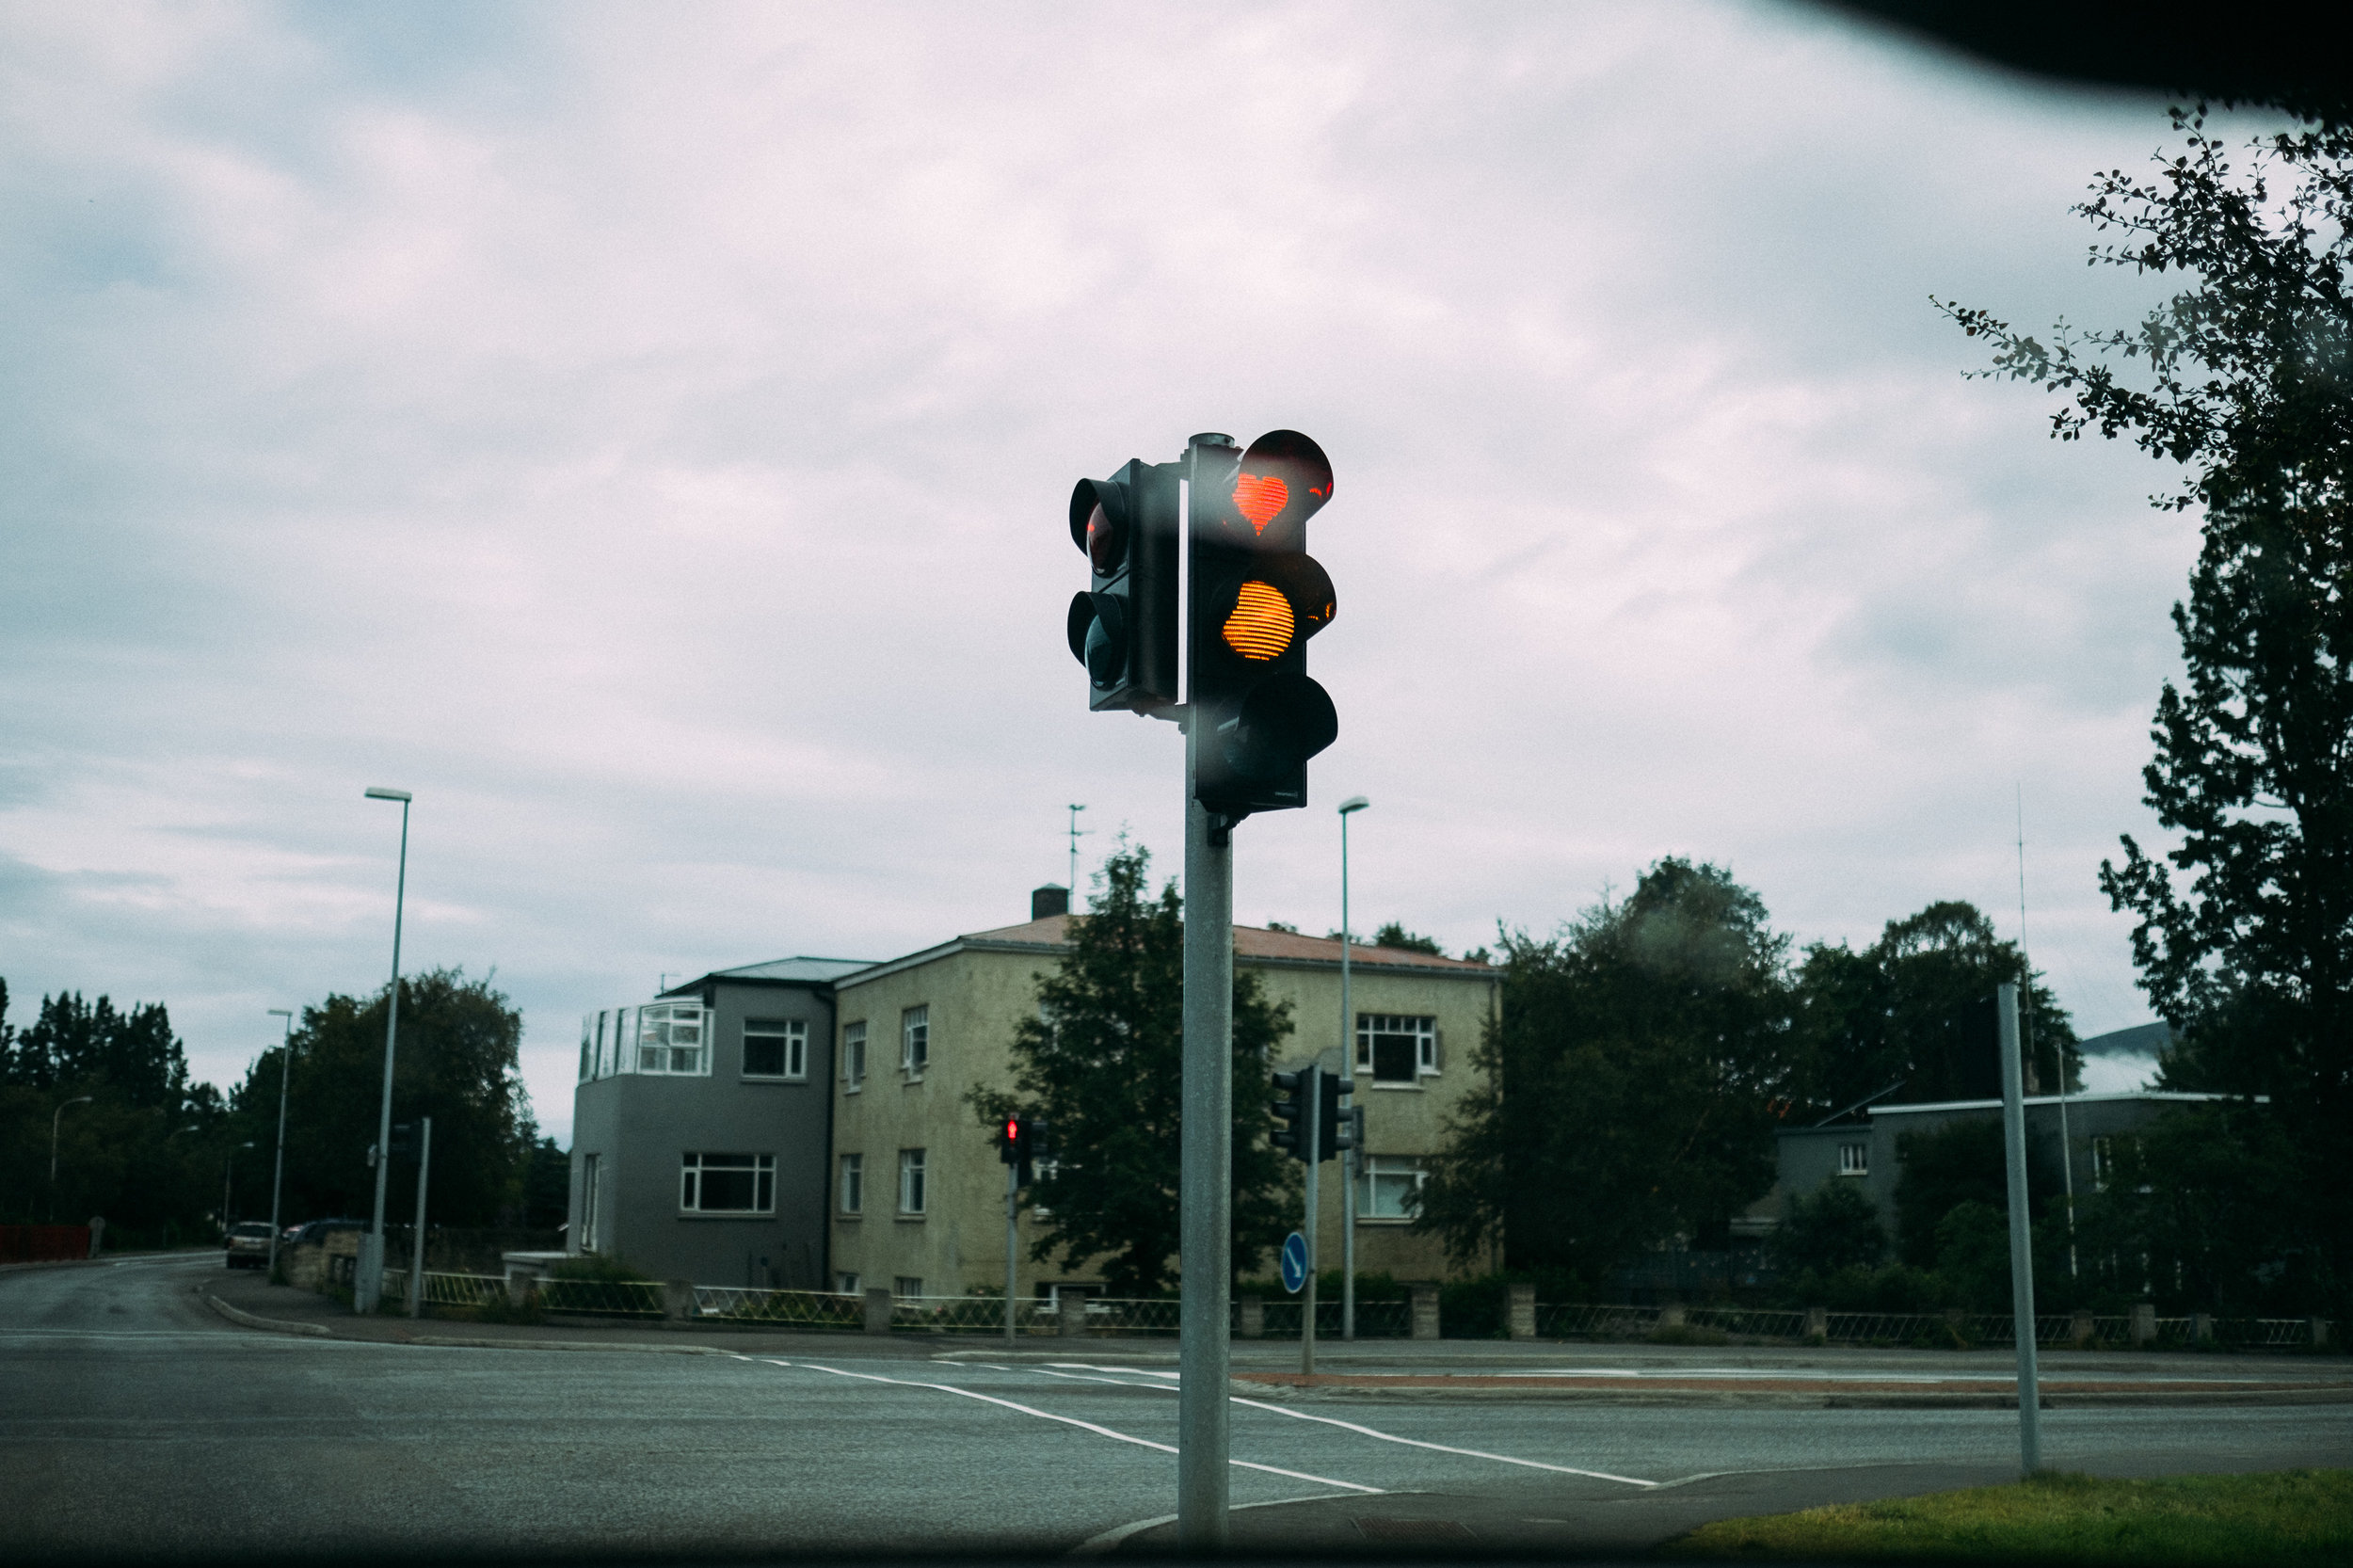 I didn't take many photos in Akureyri, but this one of the traffic lights stood out. They did this during the 2008 financial crisis to life peoples mood, they liked it so much they have kept them. [65.6240766,-18.2152425]  Fuji X-H1 + 23mm 1.4 lens